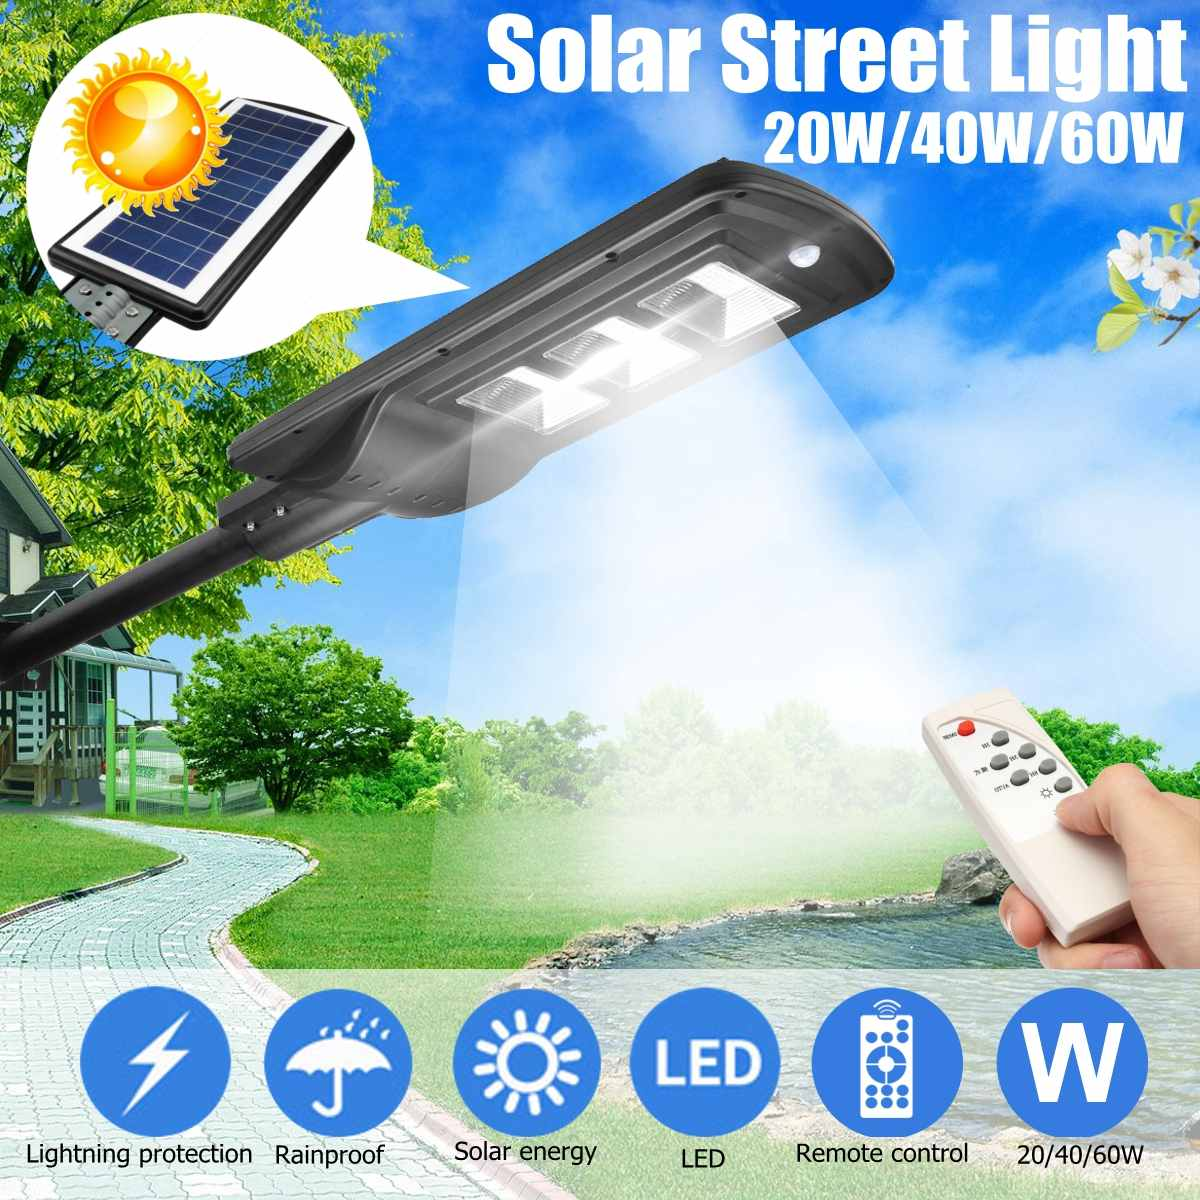 Use, Switch, Garden, LED, Home, Street